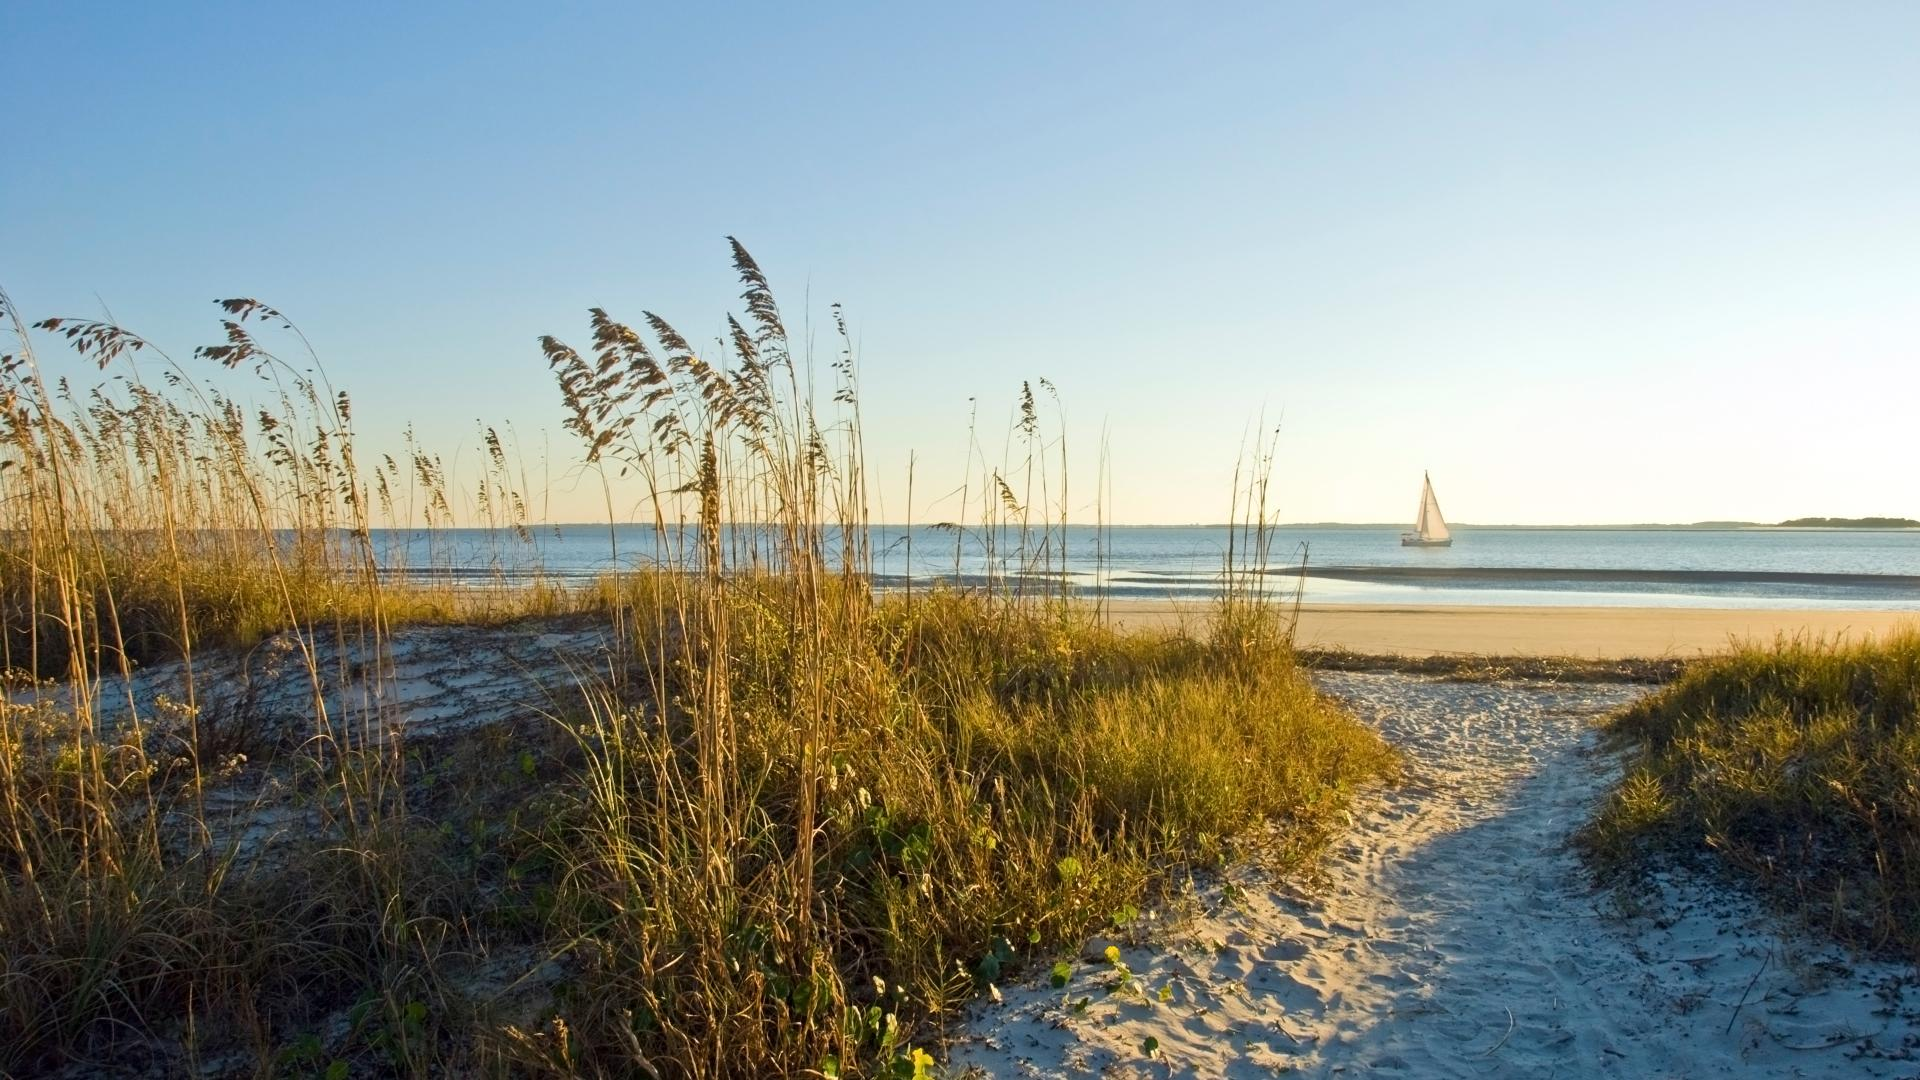 Short distance to Hilton Head beaches for relaxation